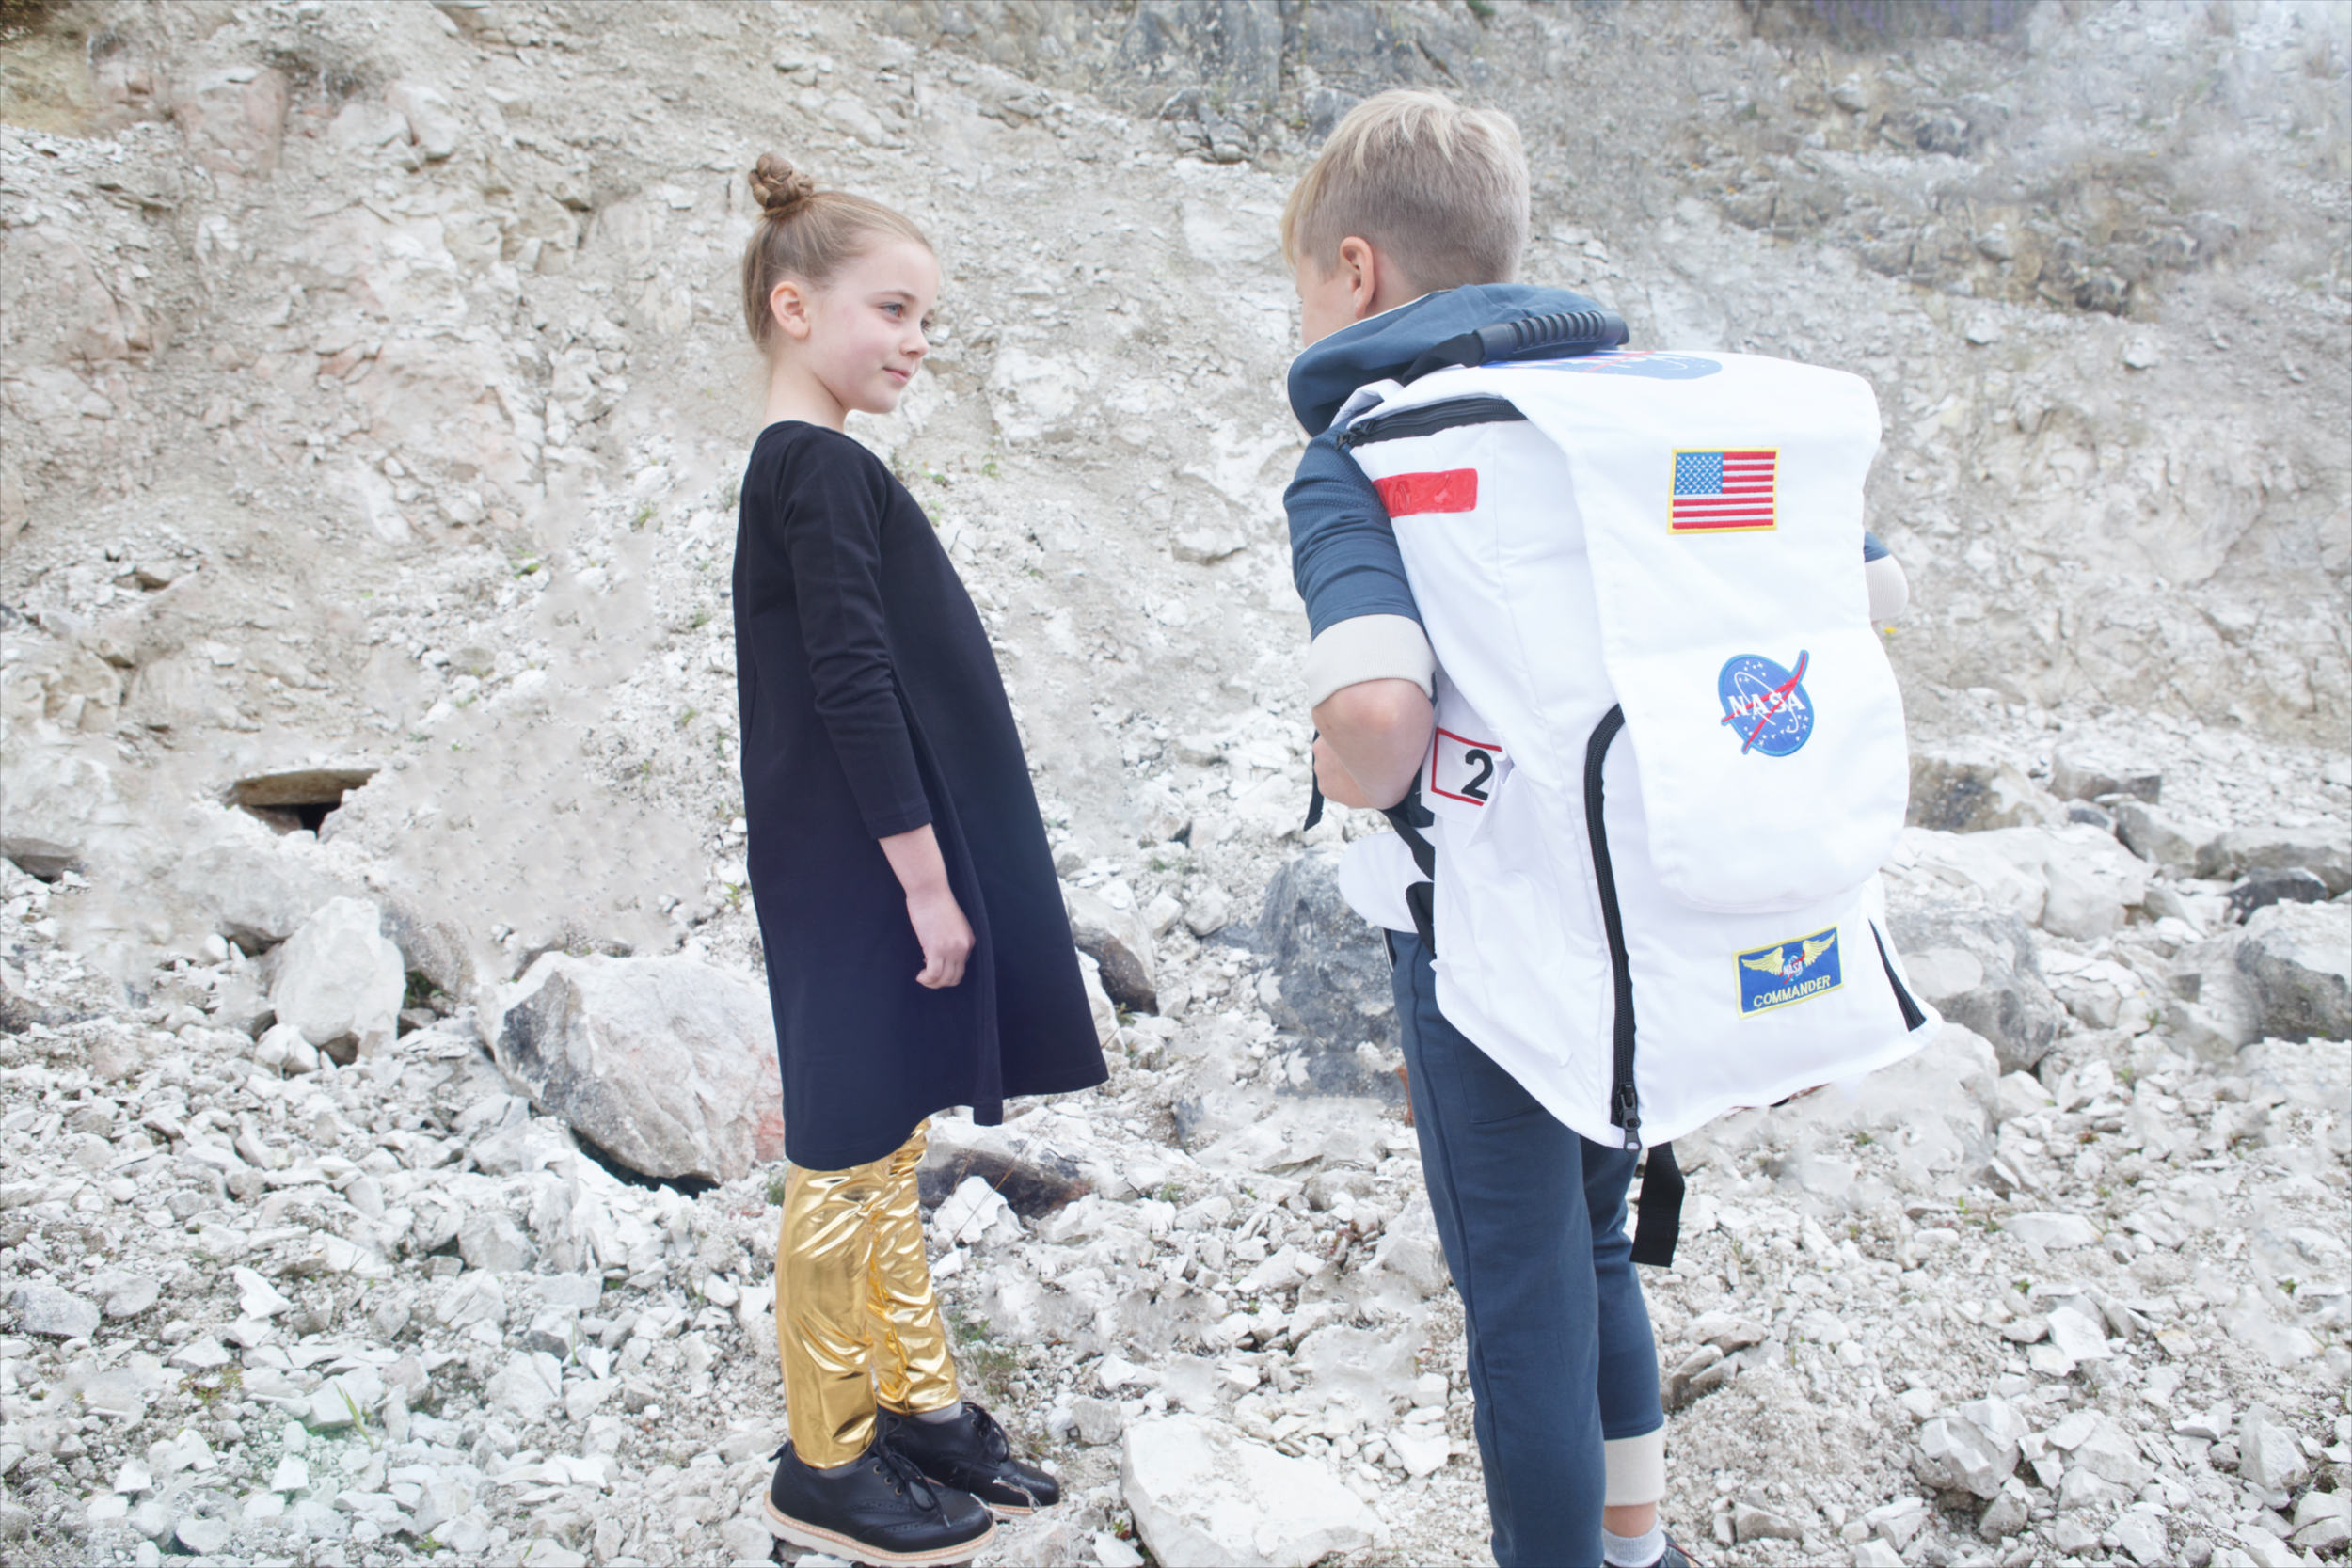 Sam: Blue all-in-one,  4funkyflavours . Cloud socks,  Bobo Choses . Blue monkey boots,  Young Soles . NASA backpack,  Spacekids.co.uk   Pippa: Black dress,  Mainio . Gold leggings,  Karen Brost . Black shoes,  Young Soles .